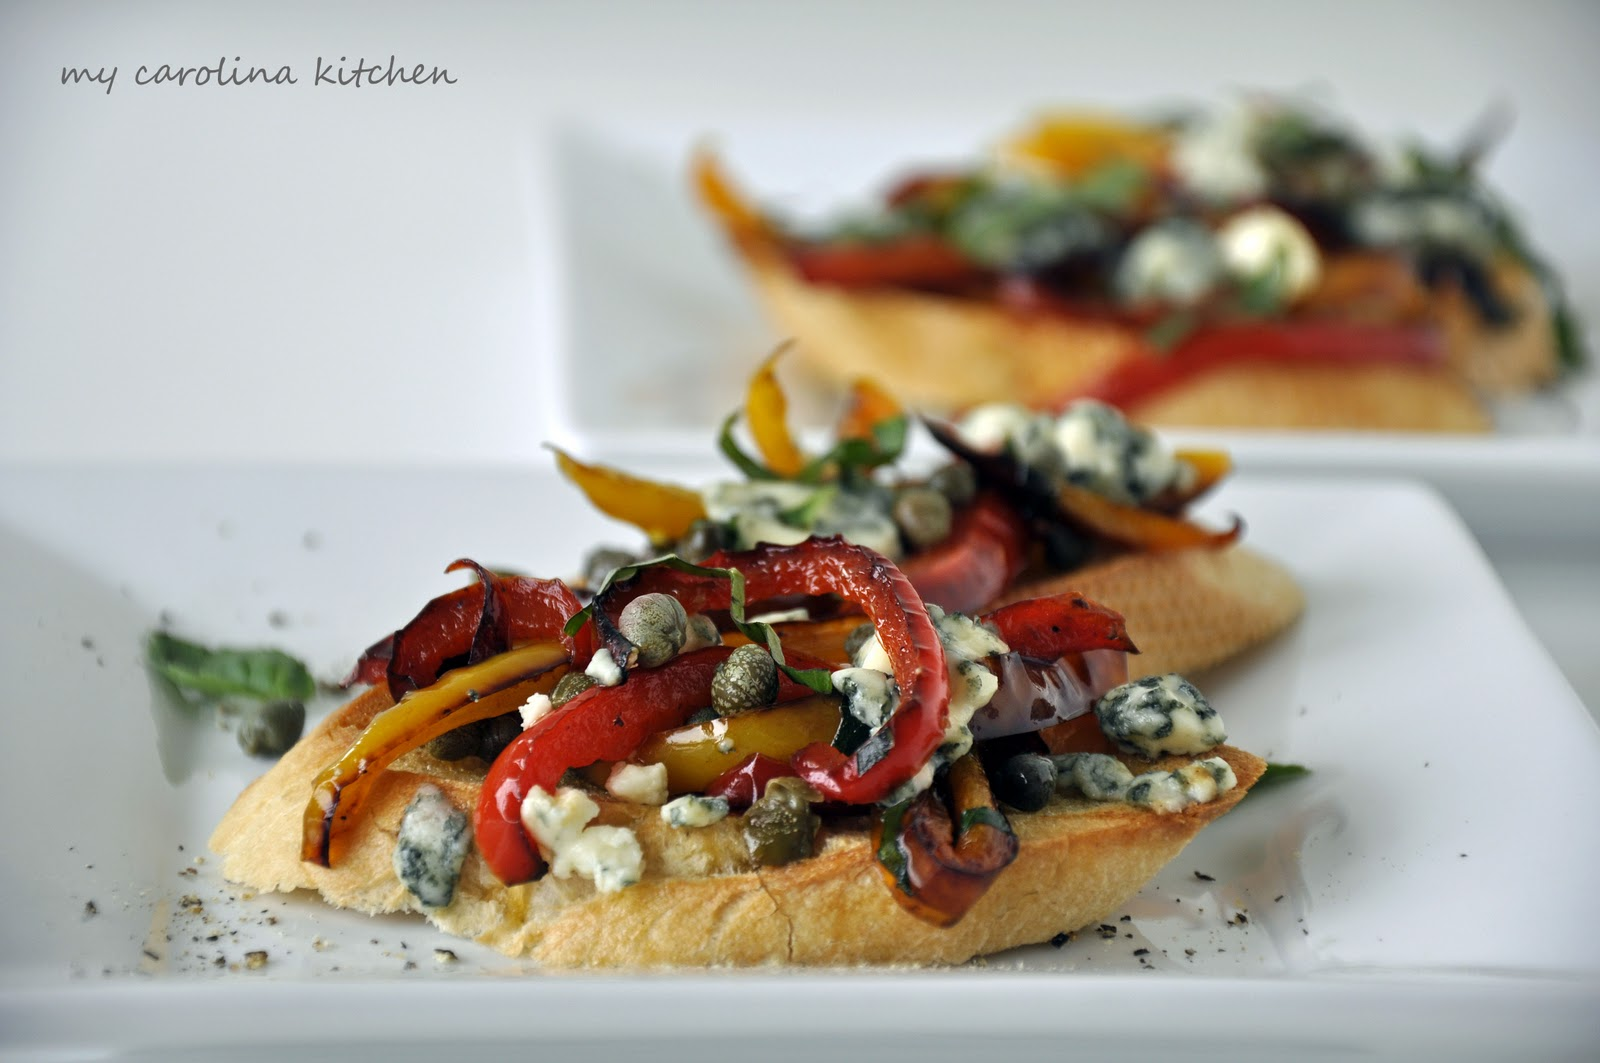 Ina Garten Appetizers My Carolina Kitchen Bruschetta With Sautéed Sweet Peppers And